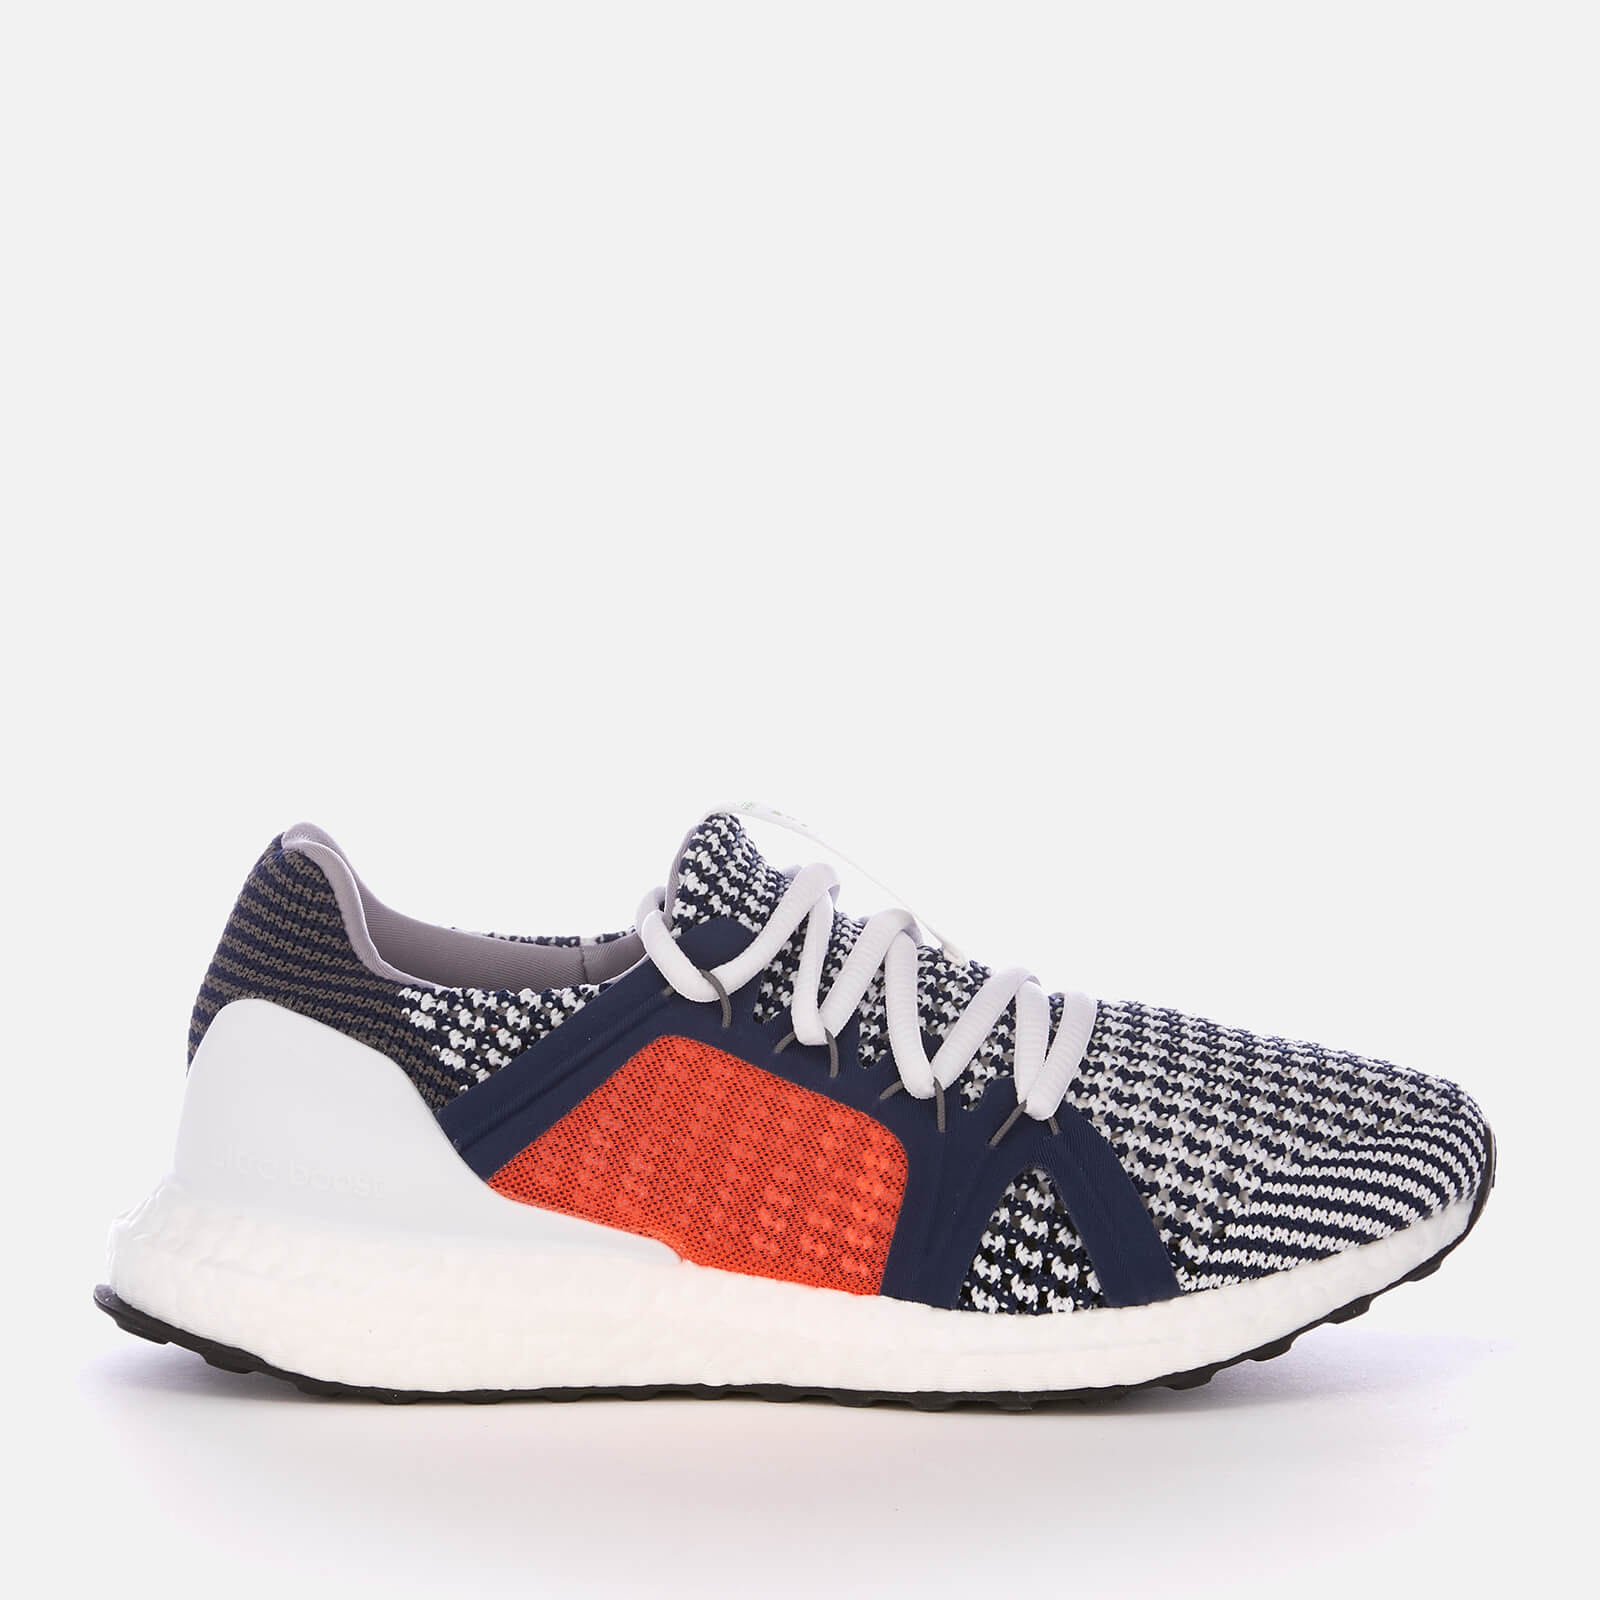 d02b70ca3f587 adidas by Stella McCartney Women s Ultraboost S Trainers - Night Indigo -  Free UK Delivery over £50